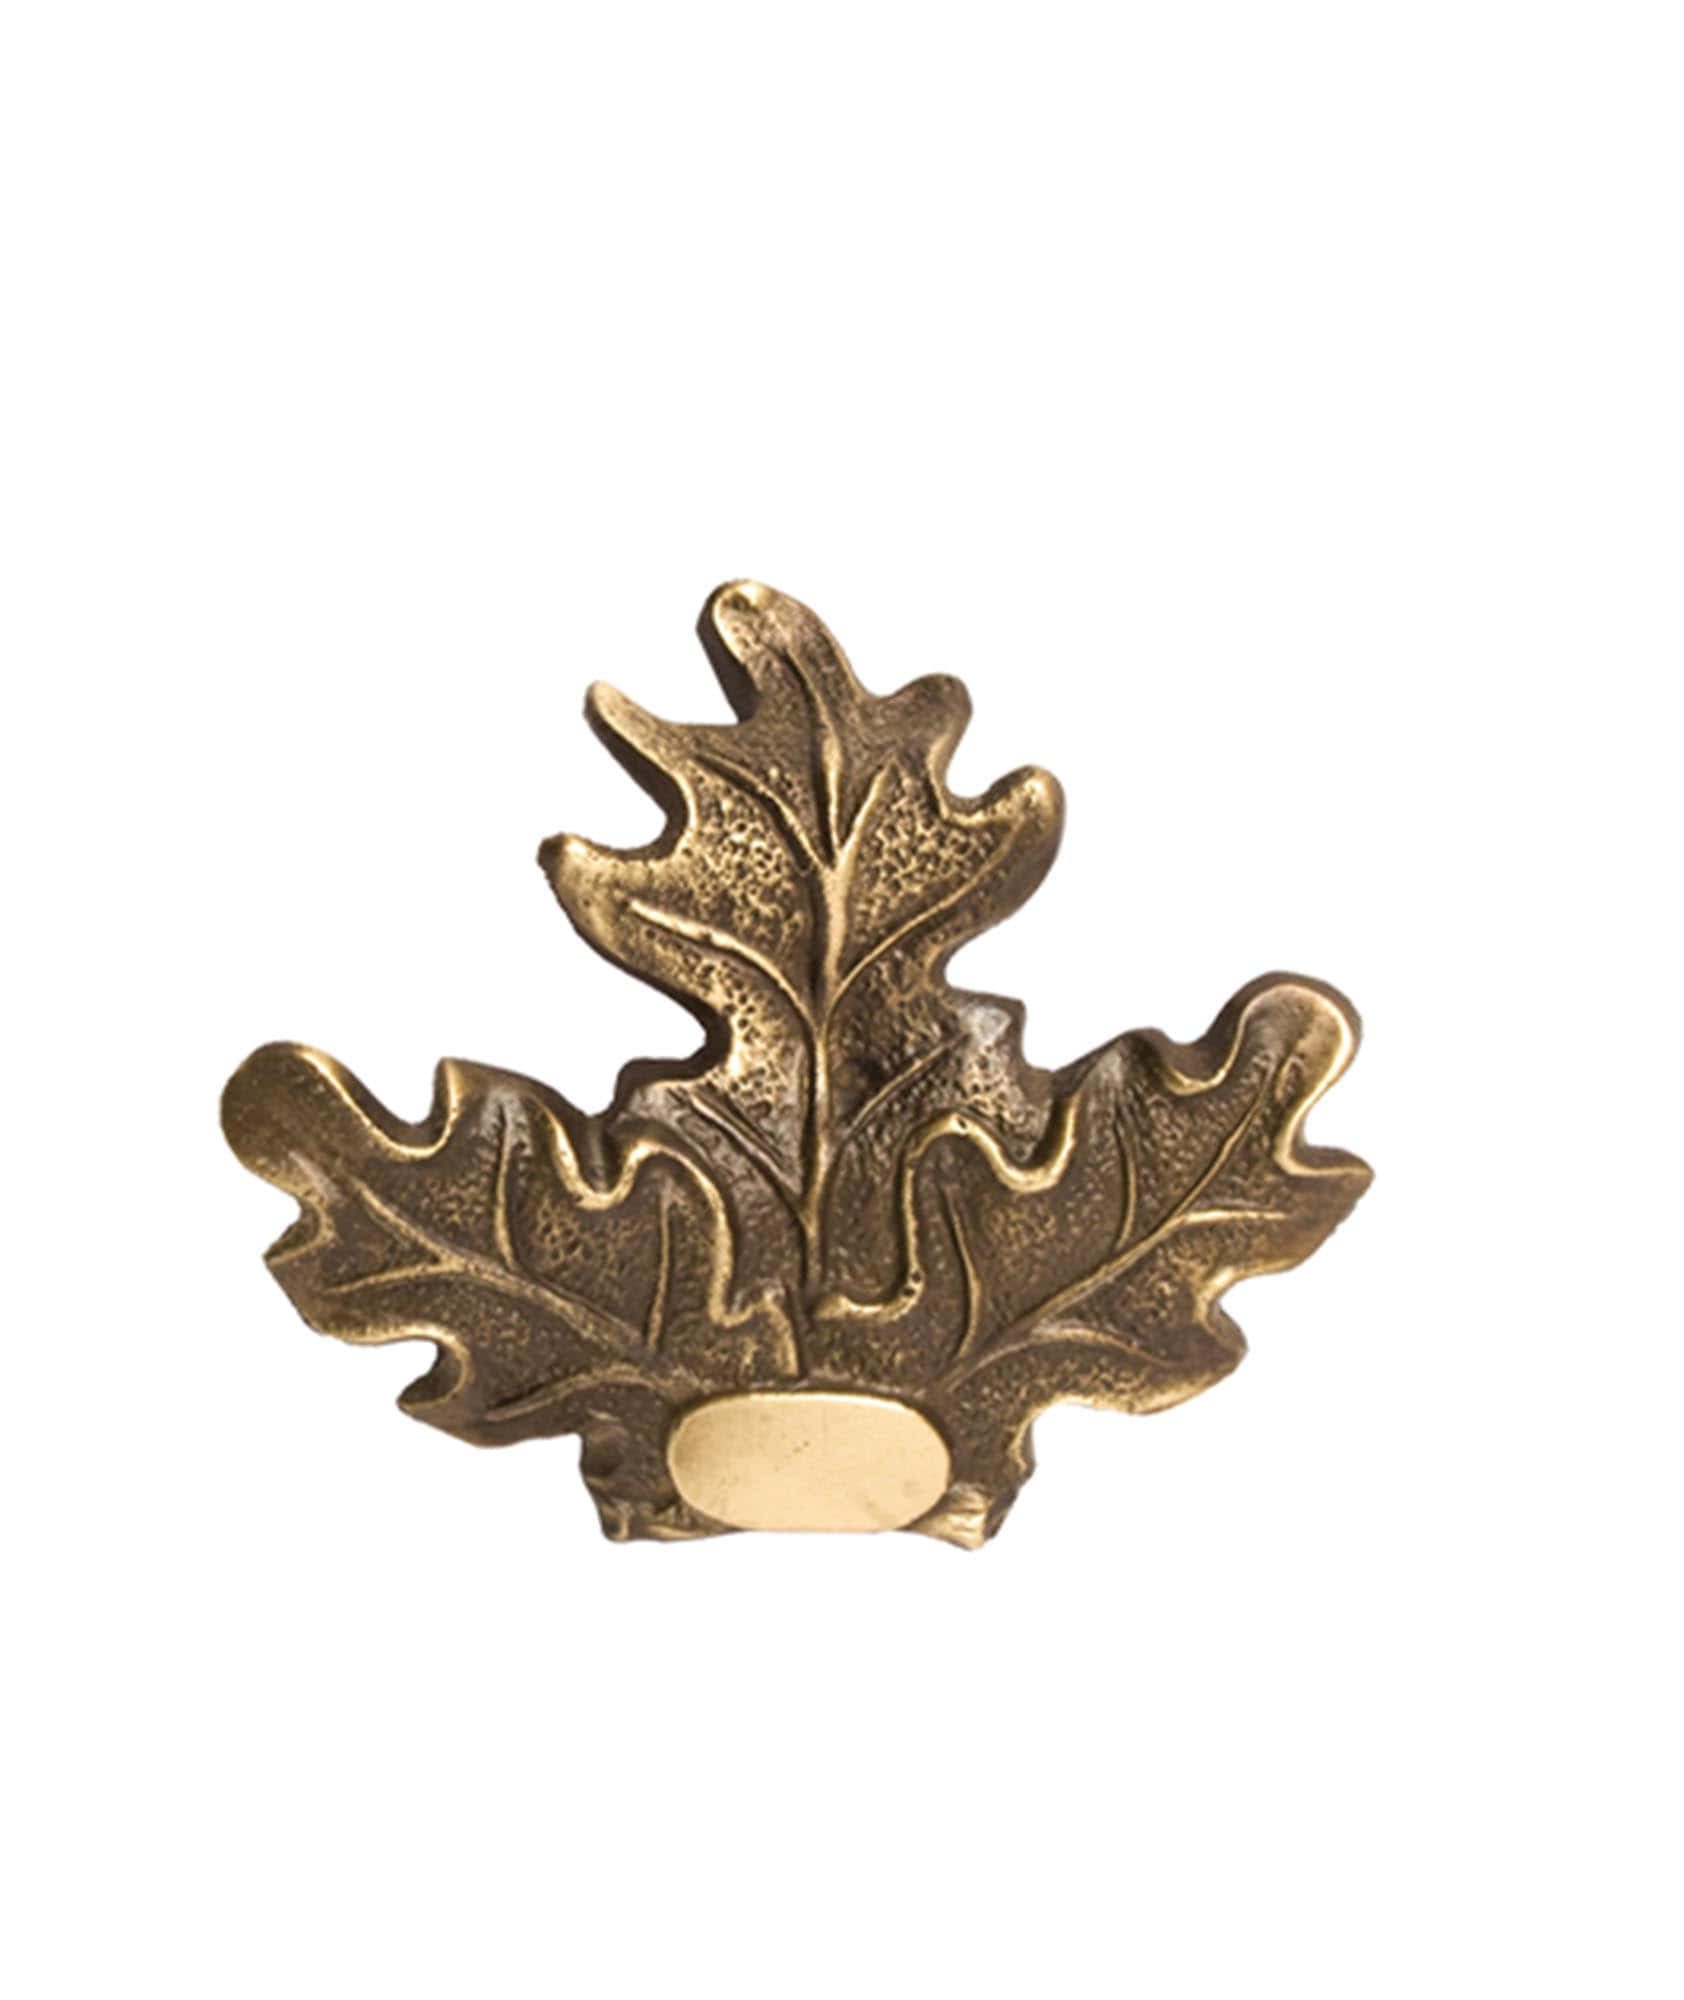 OAK LEAF HANGER - A50271